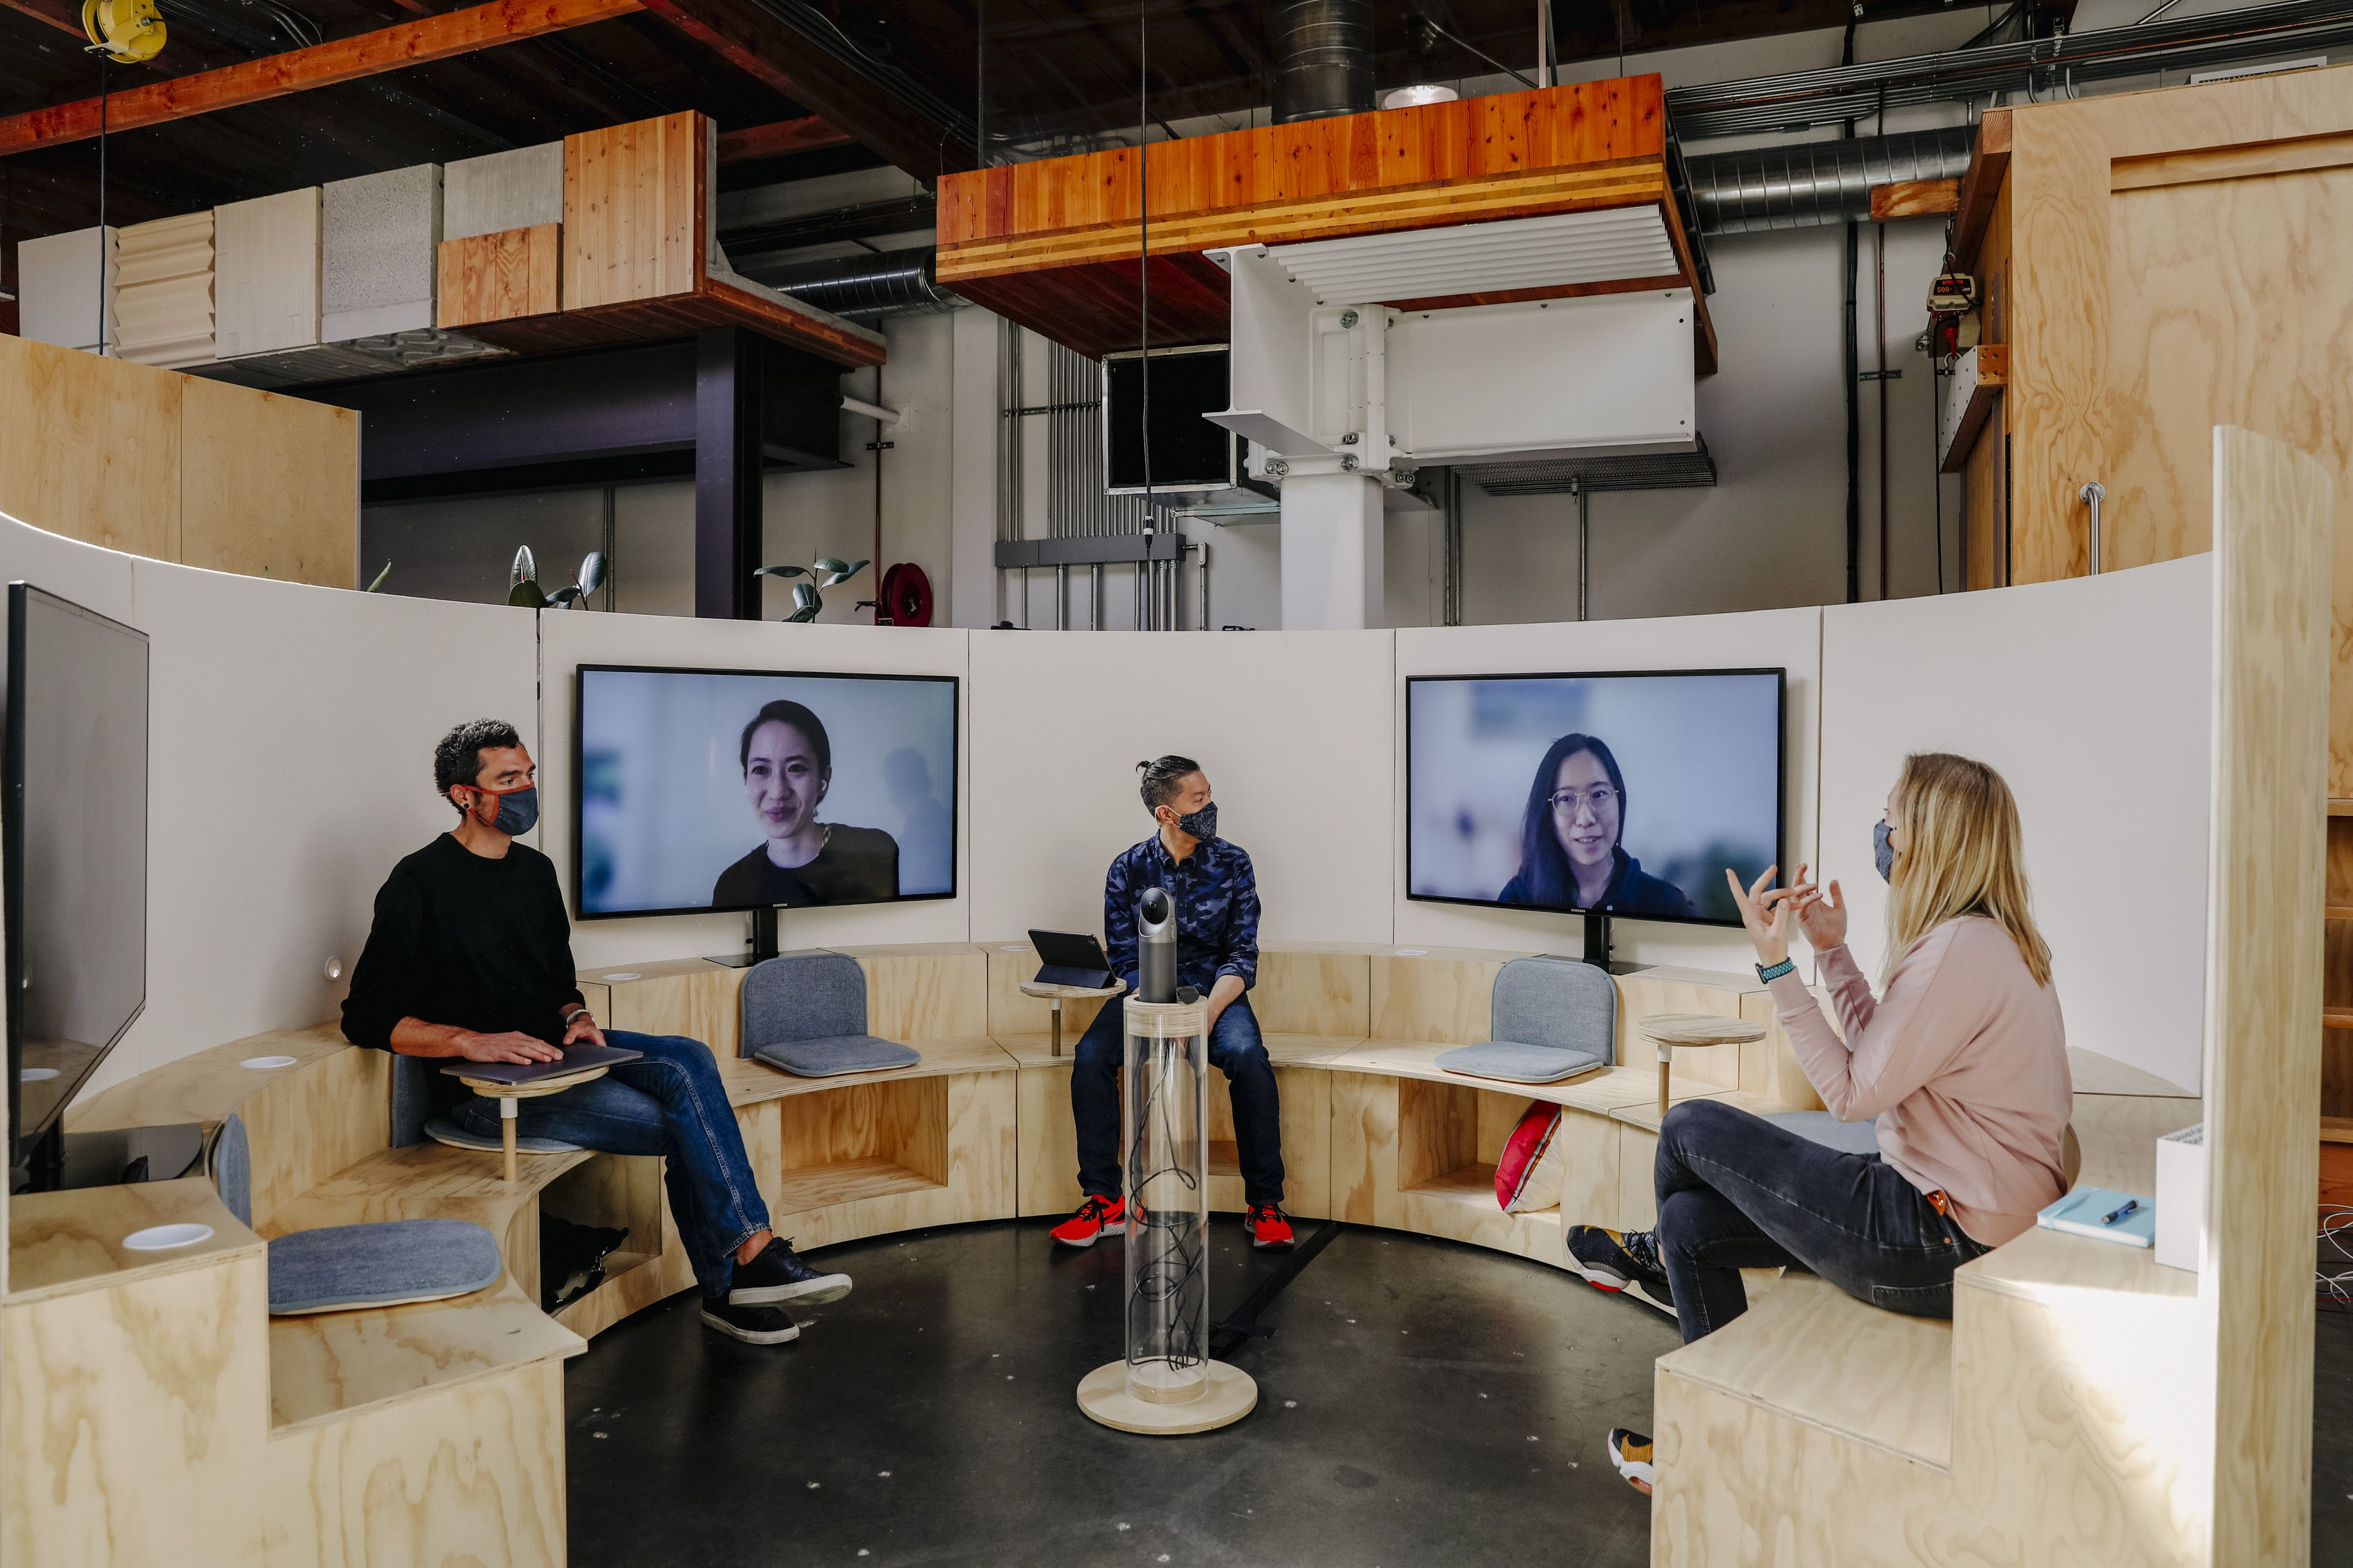 The Campfire meeting room concept, which would put virtual attendees on the same footing as in-person attendees, at Google in Mountain View, Calif., April 7, 2021. (Cayce Clifford/The New York Times)